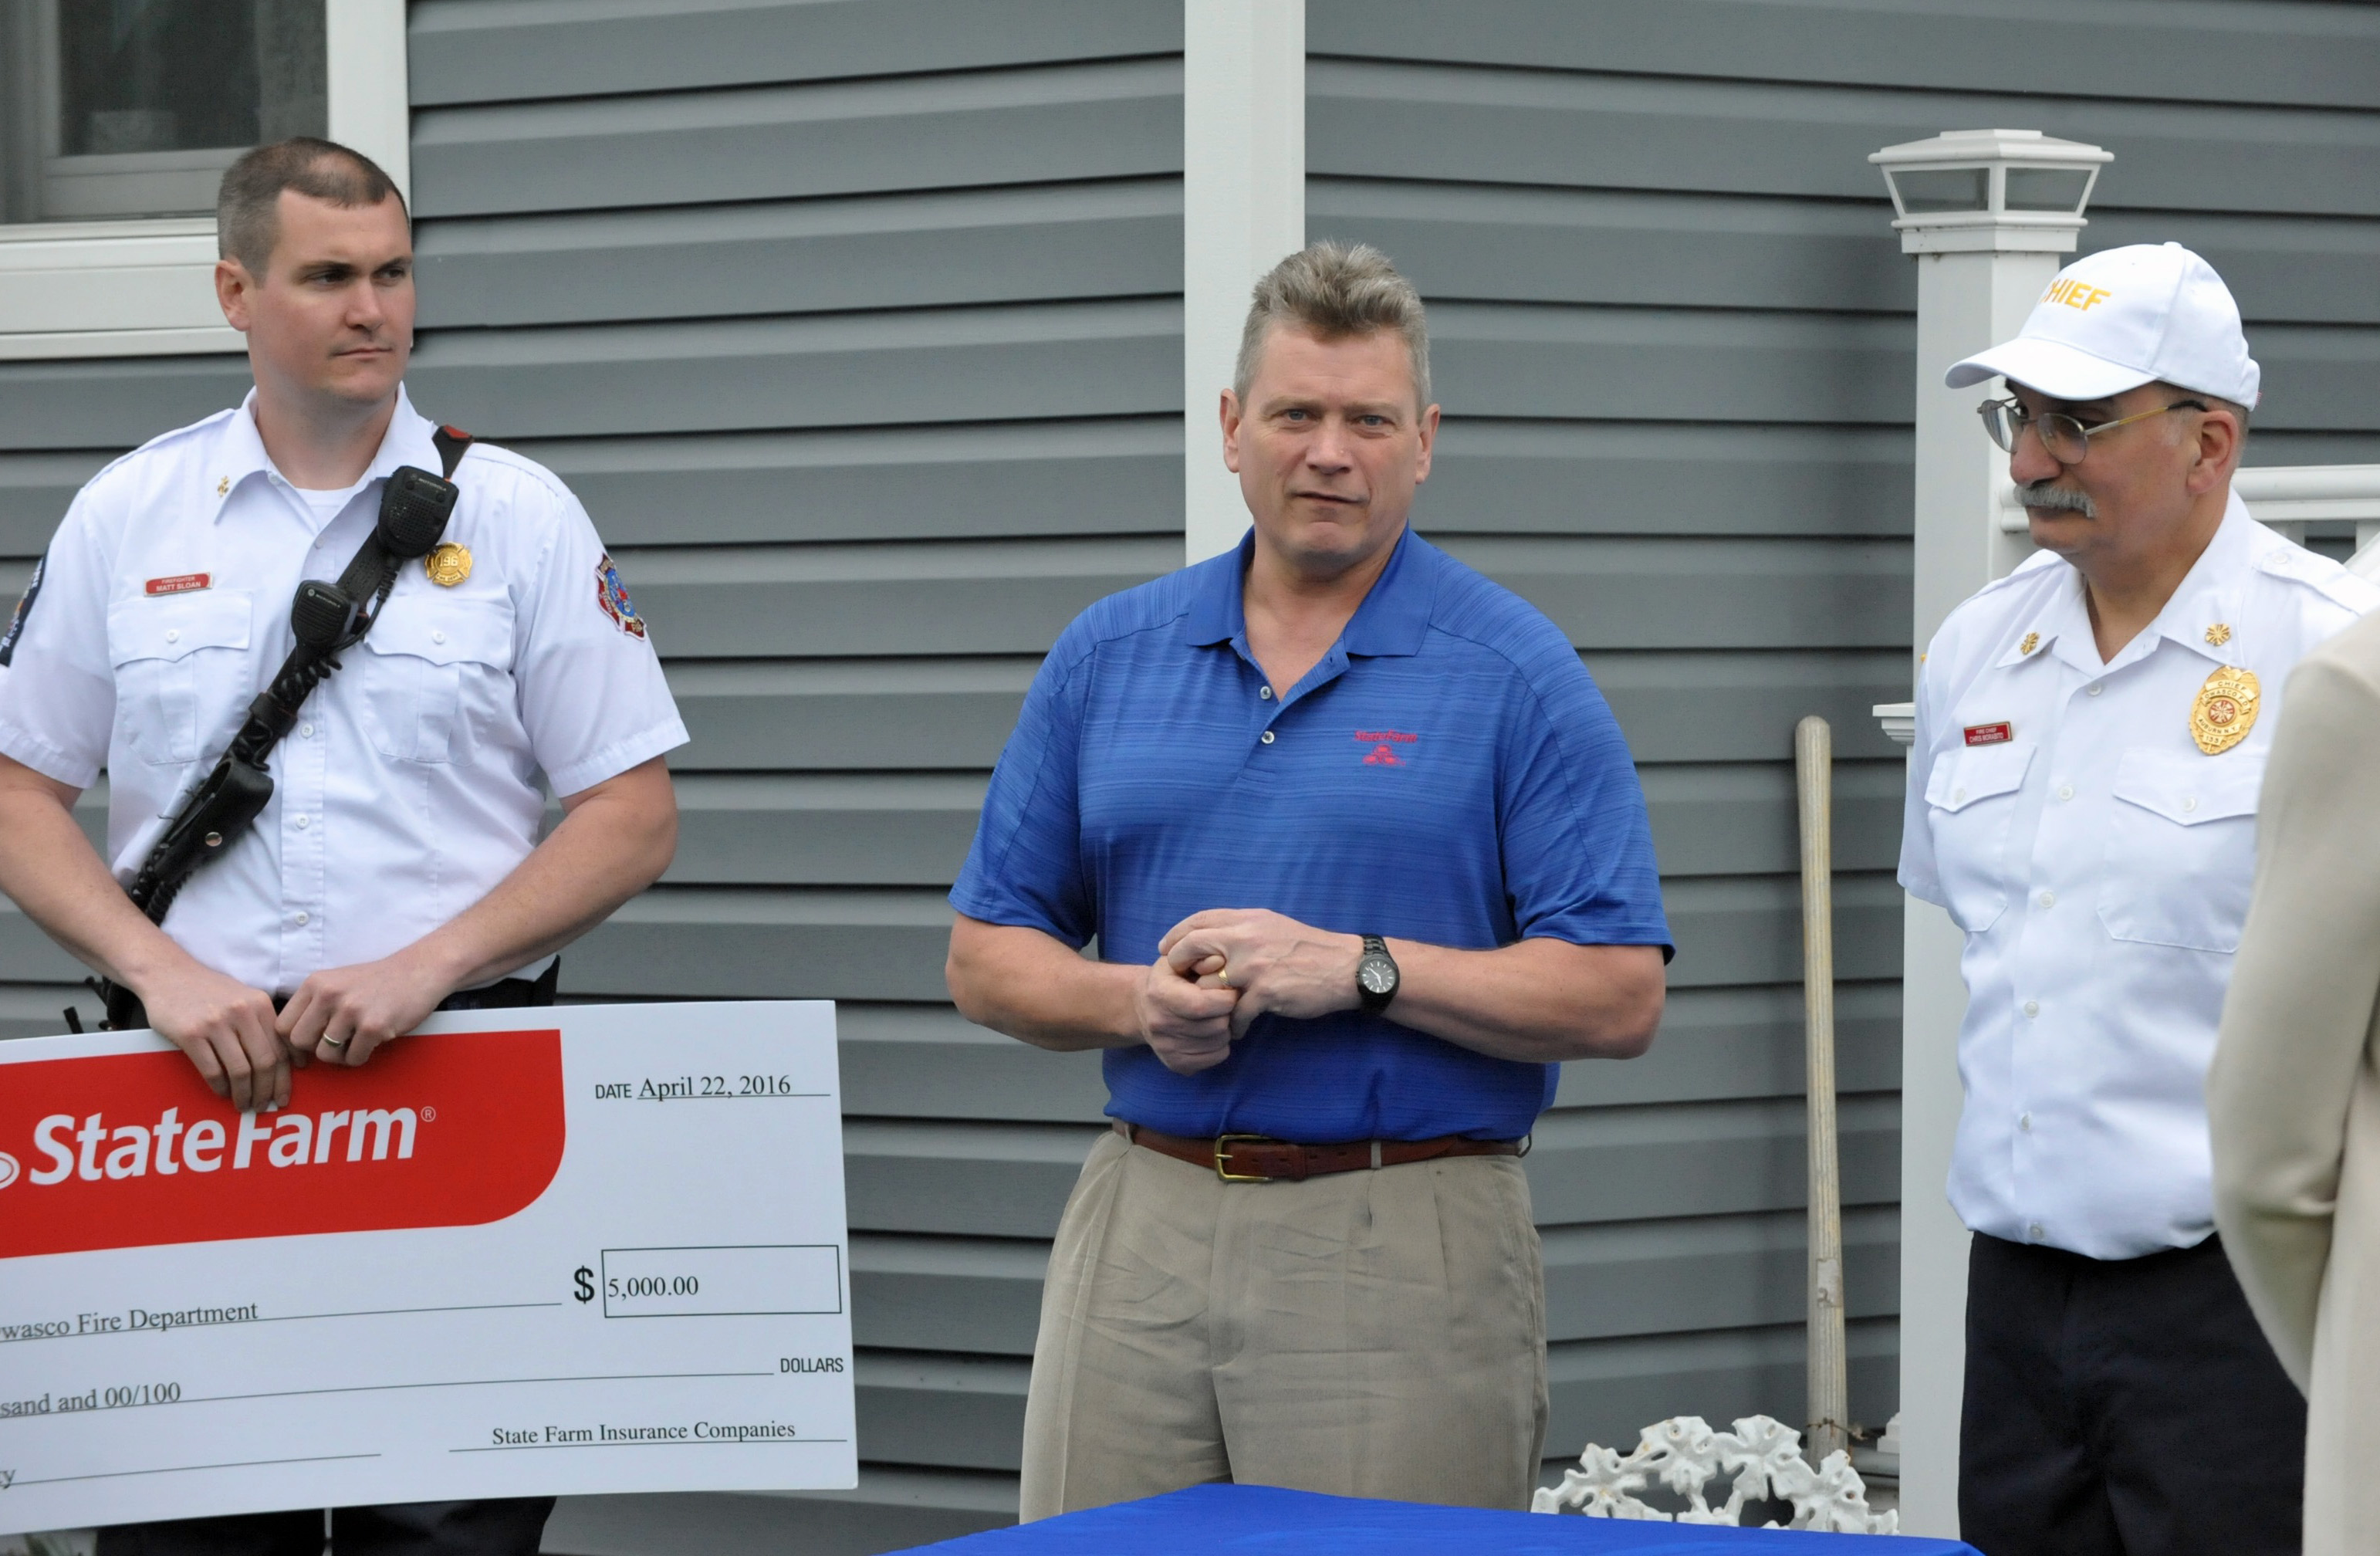 State Farm Giving Giant Check